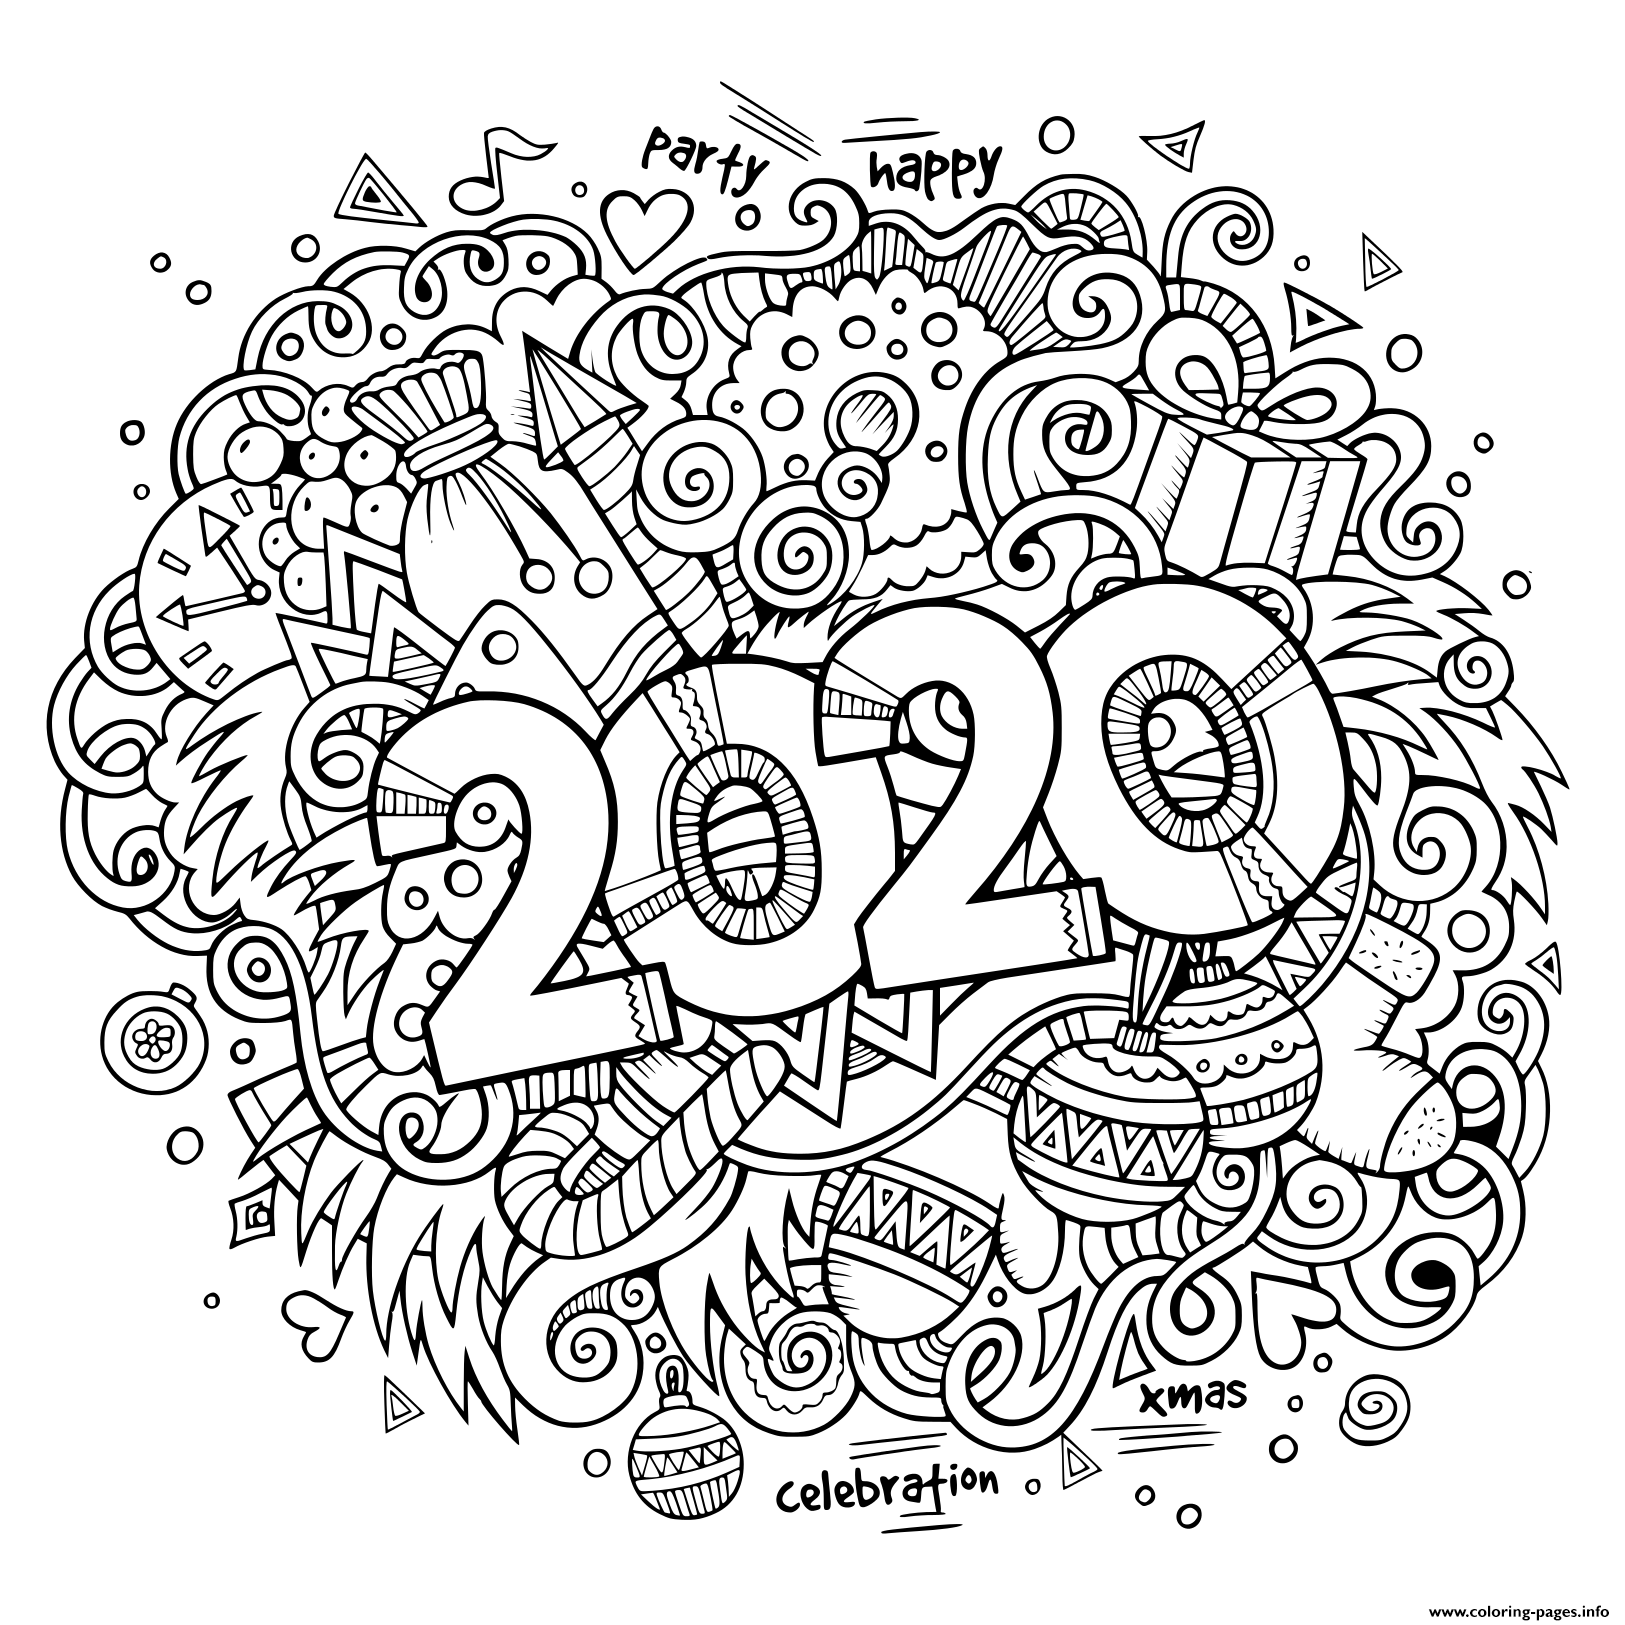 chinese new year coloring pages 2020 chinese new year 2020 coloring pages home decor wallpaper chinese new year pages coloring 2020